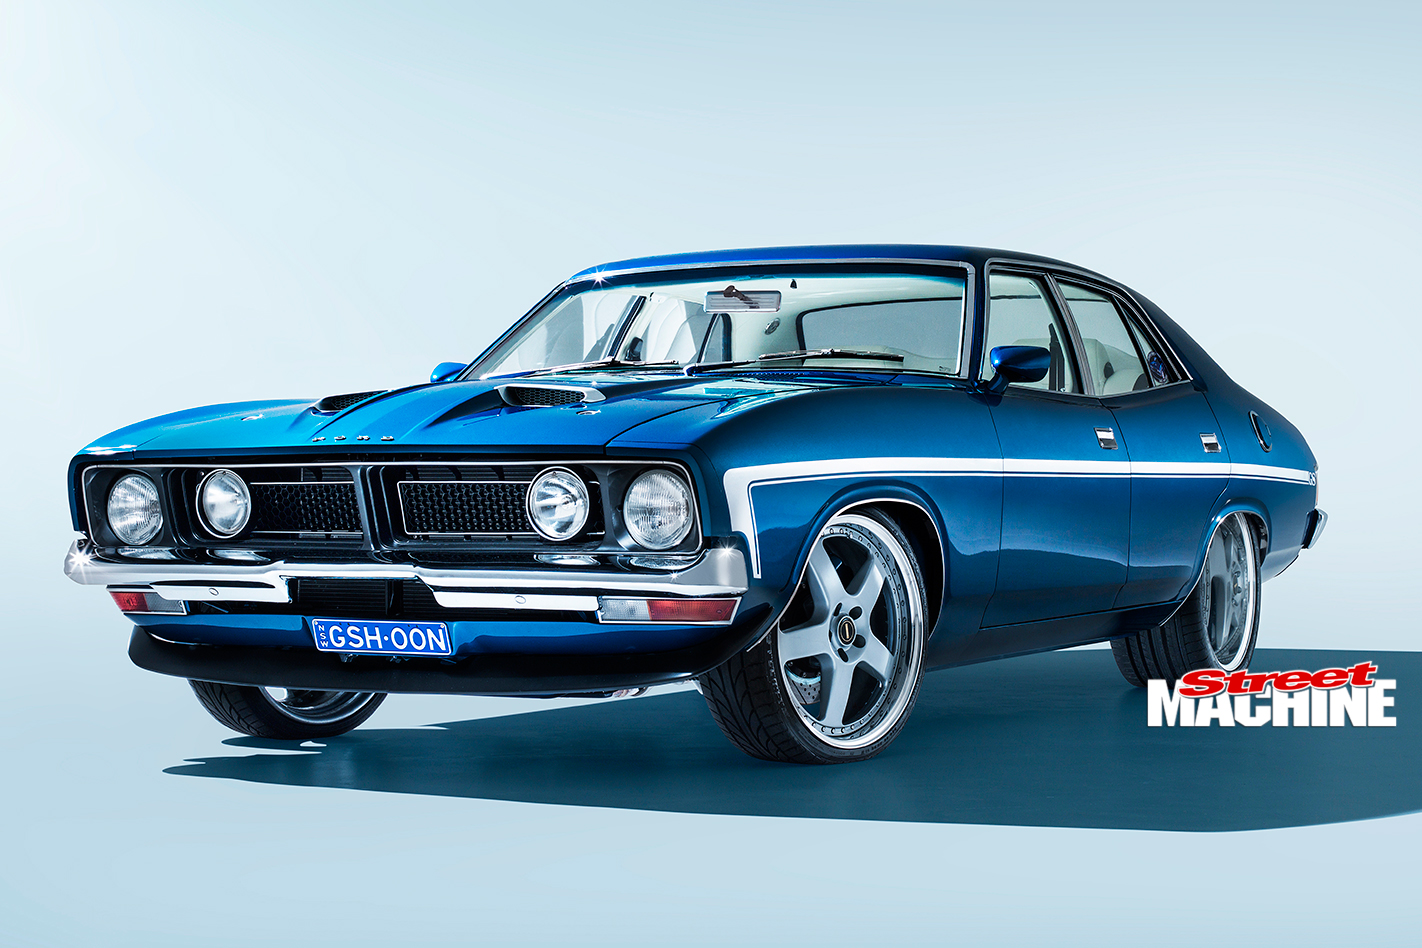 Ford Xb Gs Fairmont Streeter Gshoon